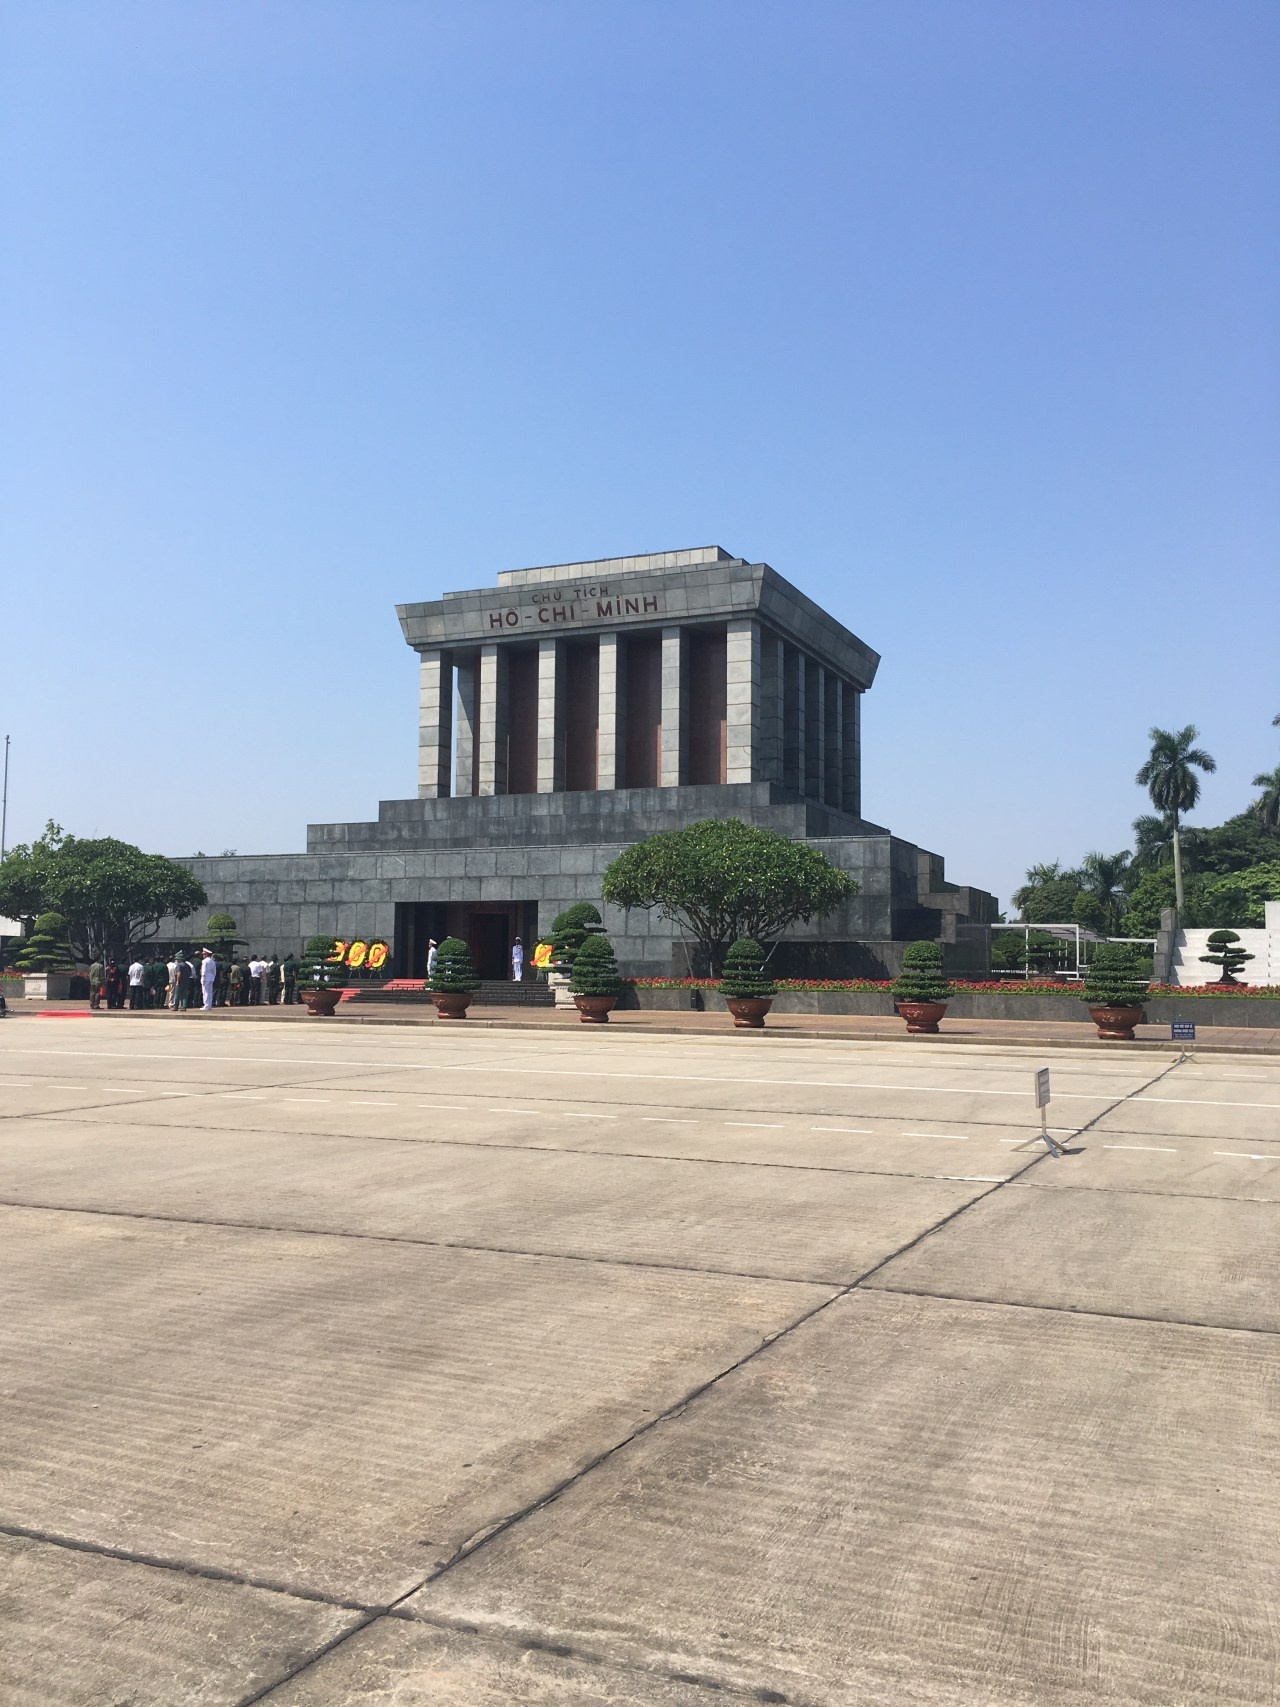 The mausoleum where Ho Chi Minh lays